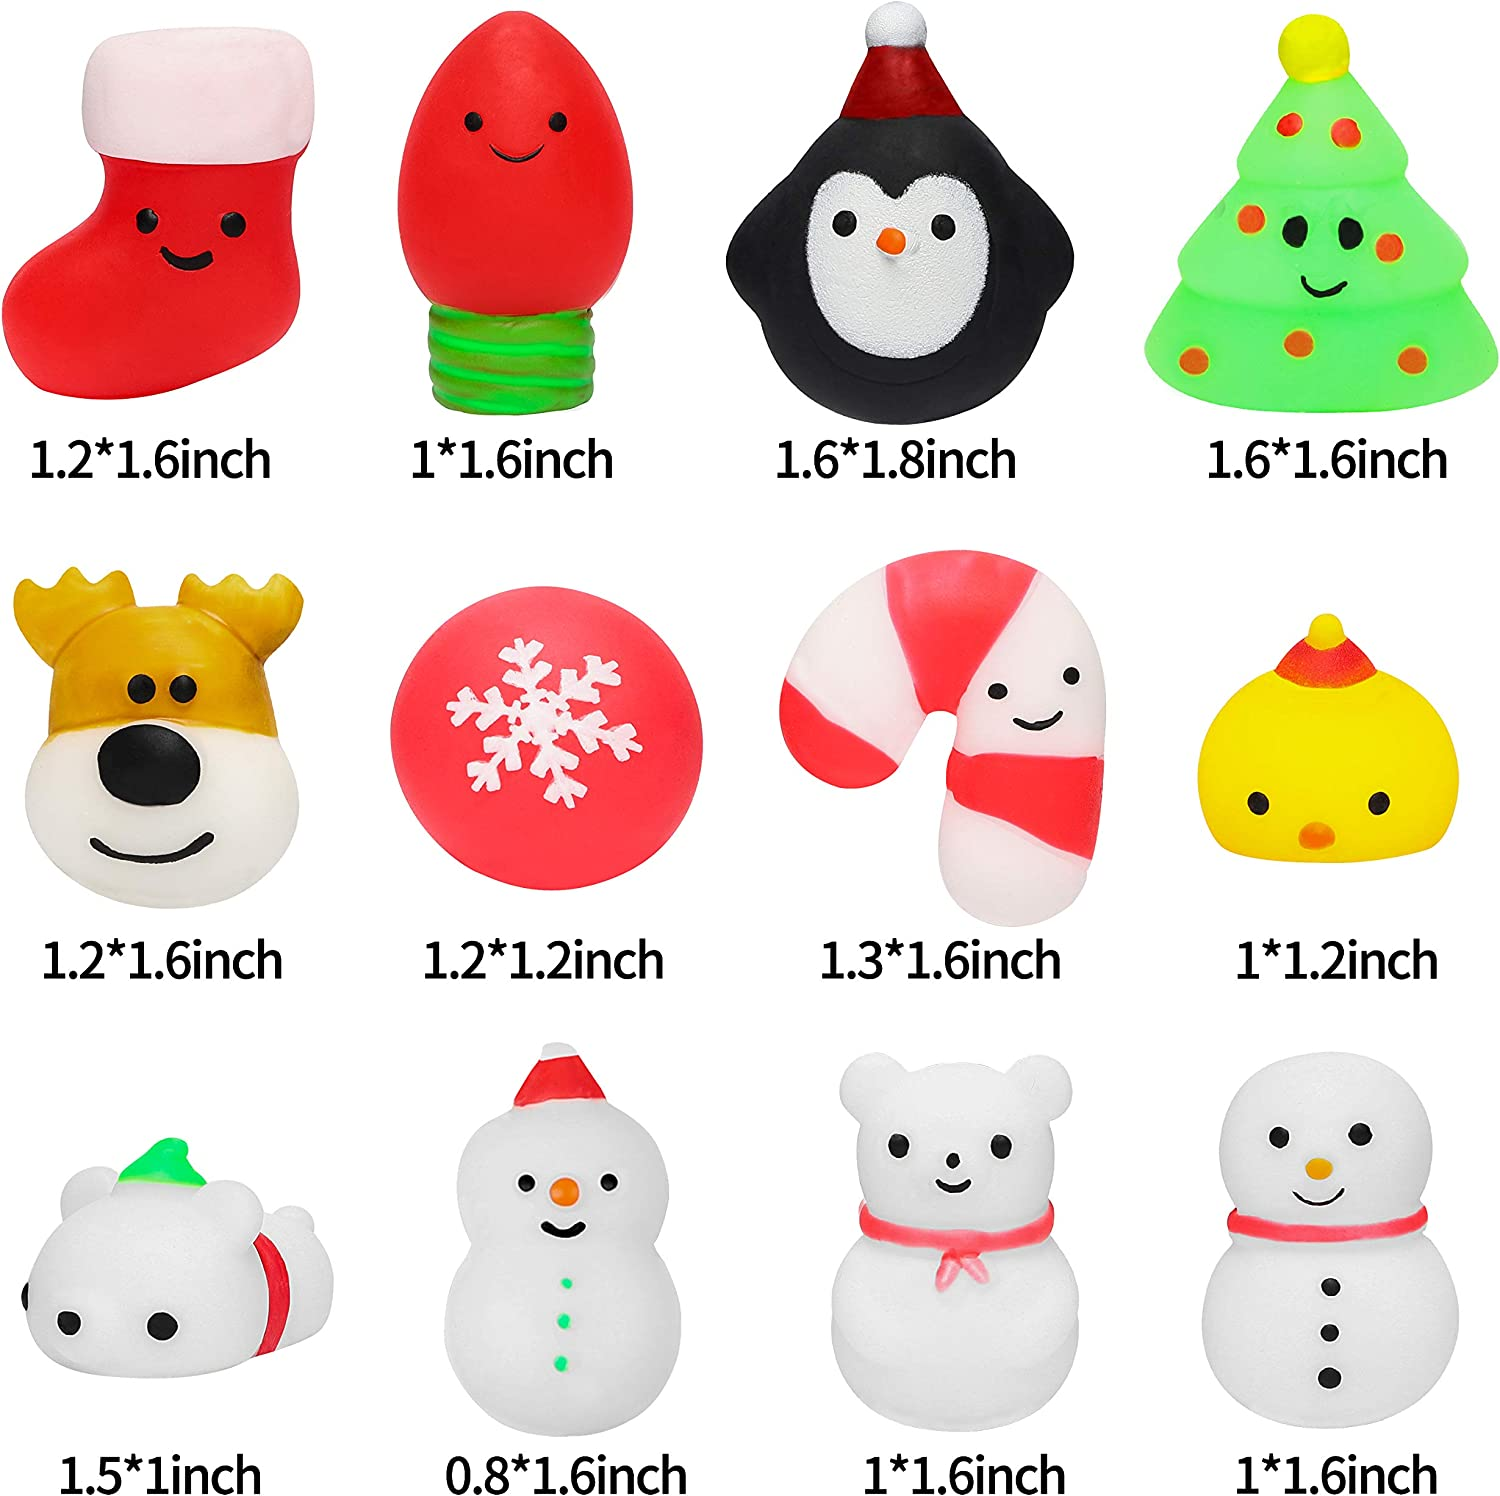 Kawaii Animal Squeeze Squishies for Kids Stress Relief Toys Soft Jelly Mochi for Xmas Party Favors Christmas Eve Surprise Include Snowman Cute Santa Decor WATINC 20Pcs Christmas Mochi Squishies